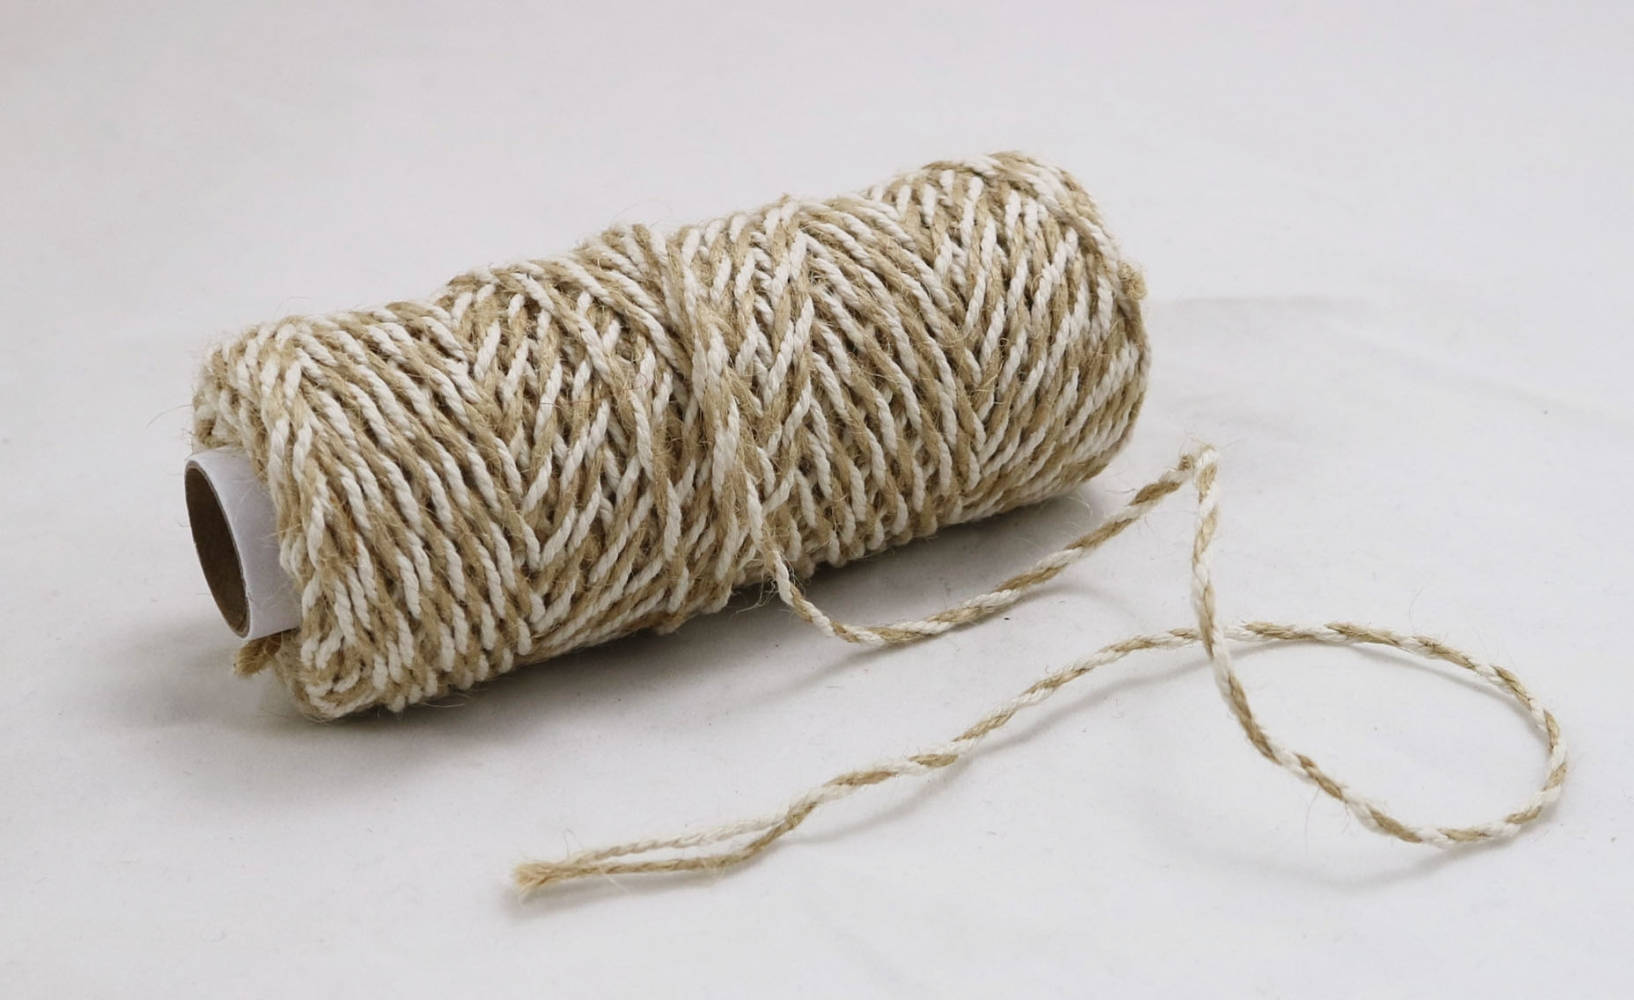 Jute+cotton cord, natural-white color, 50 meters - 2